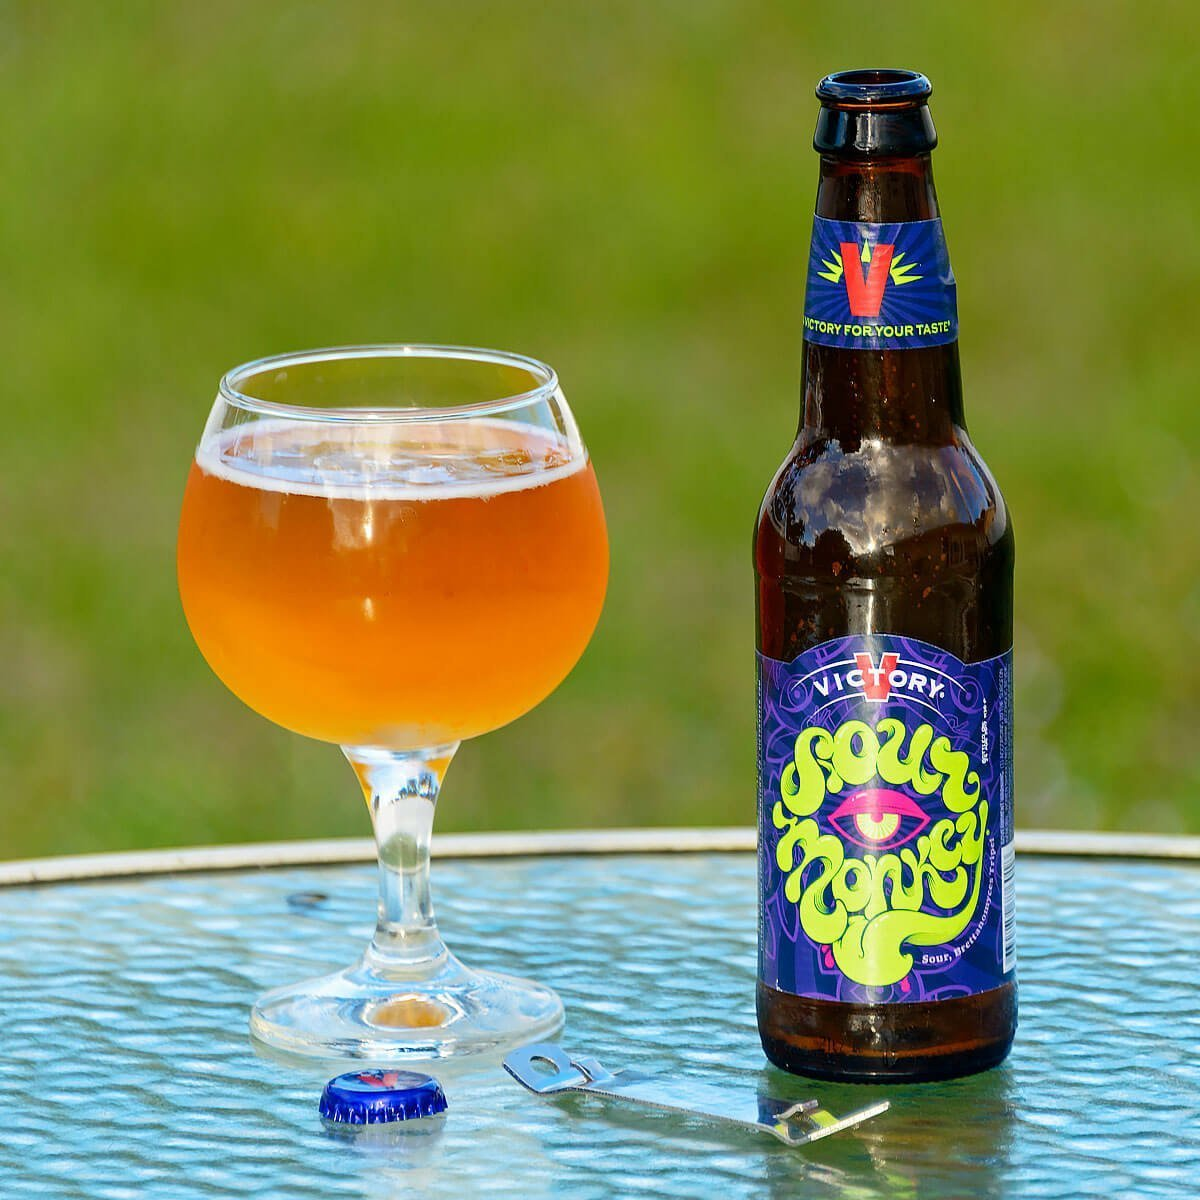 Sour Monkey, a Belgian-style Tripel by Victory Brewing Company features Brettanomyces that lend sour apple and lemon to a wheat base.